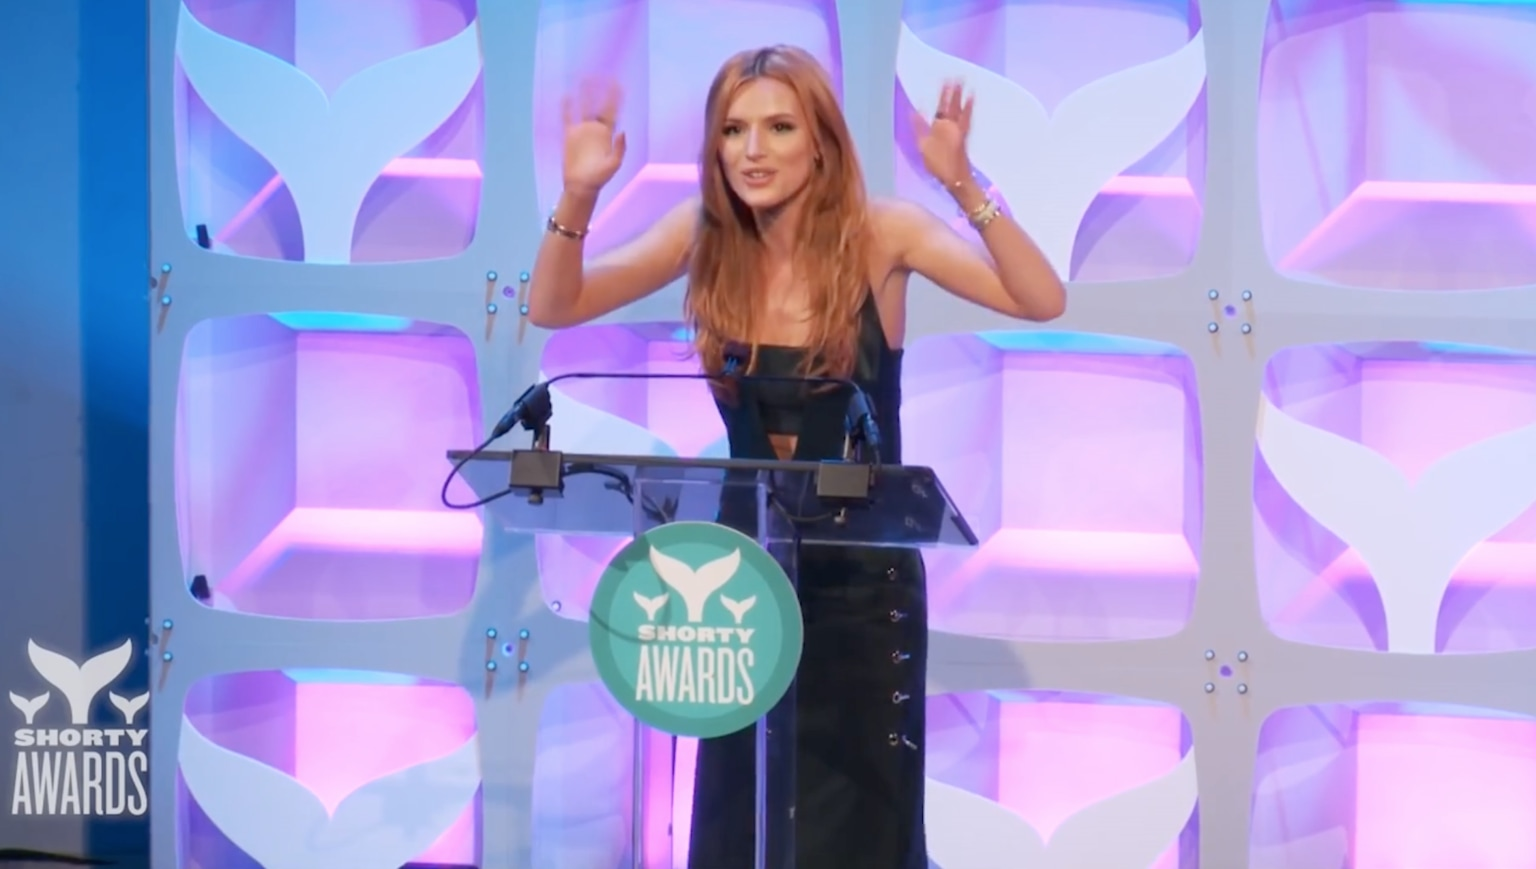 10th Annual Shorty Awards